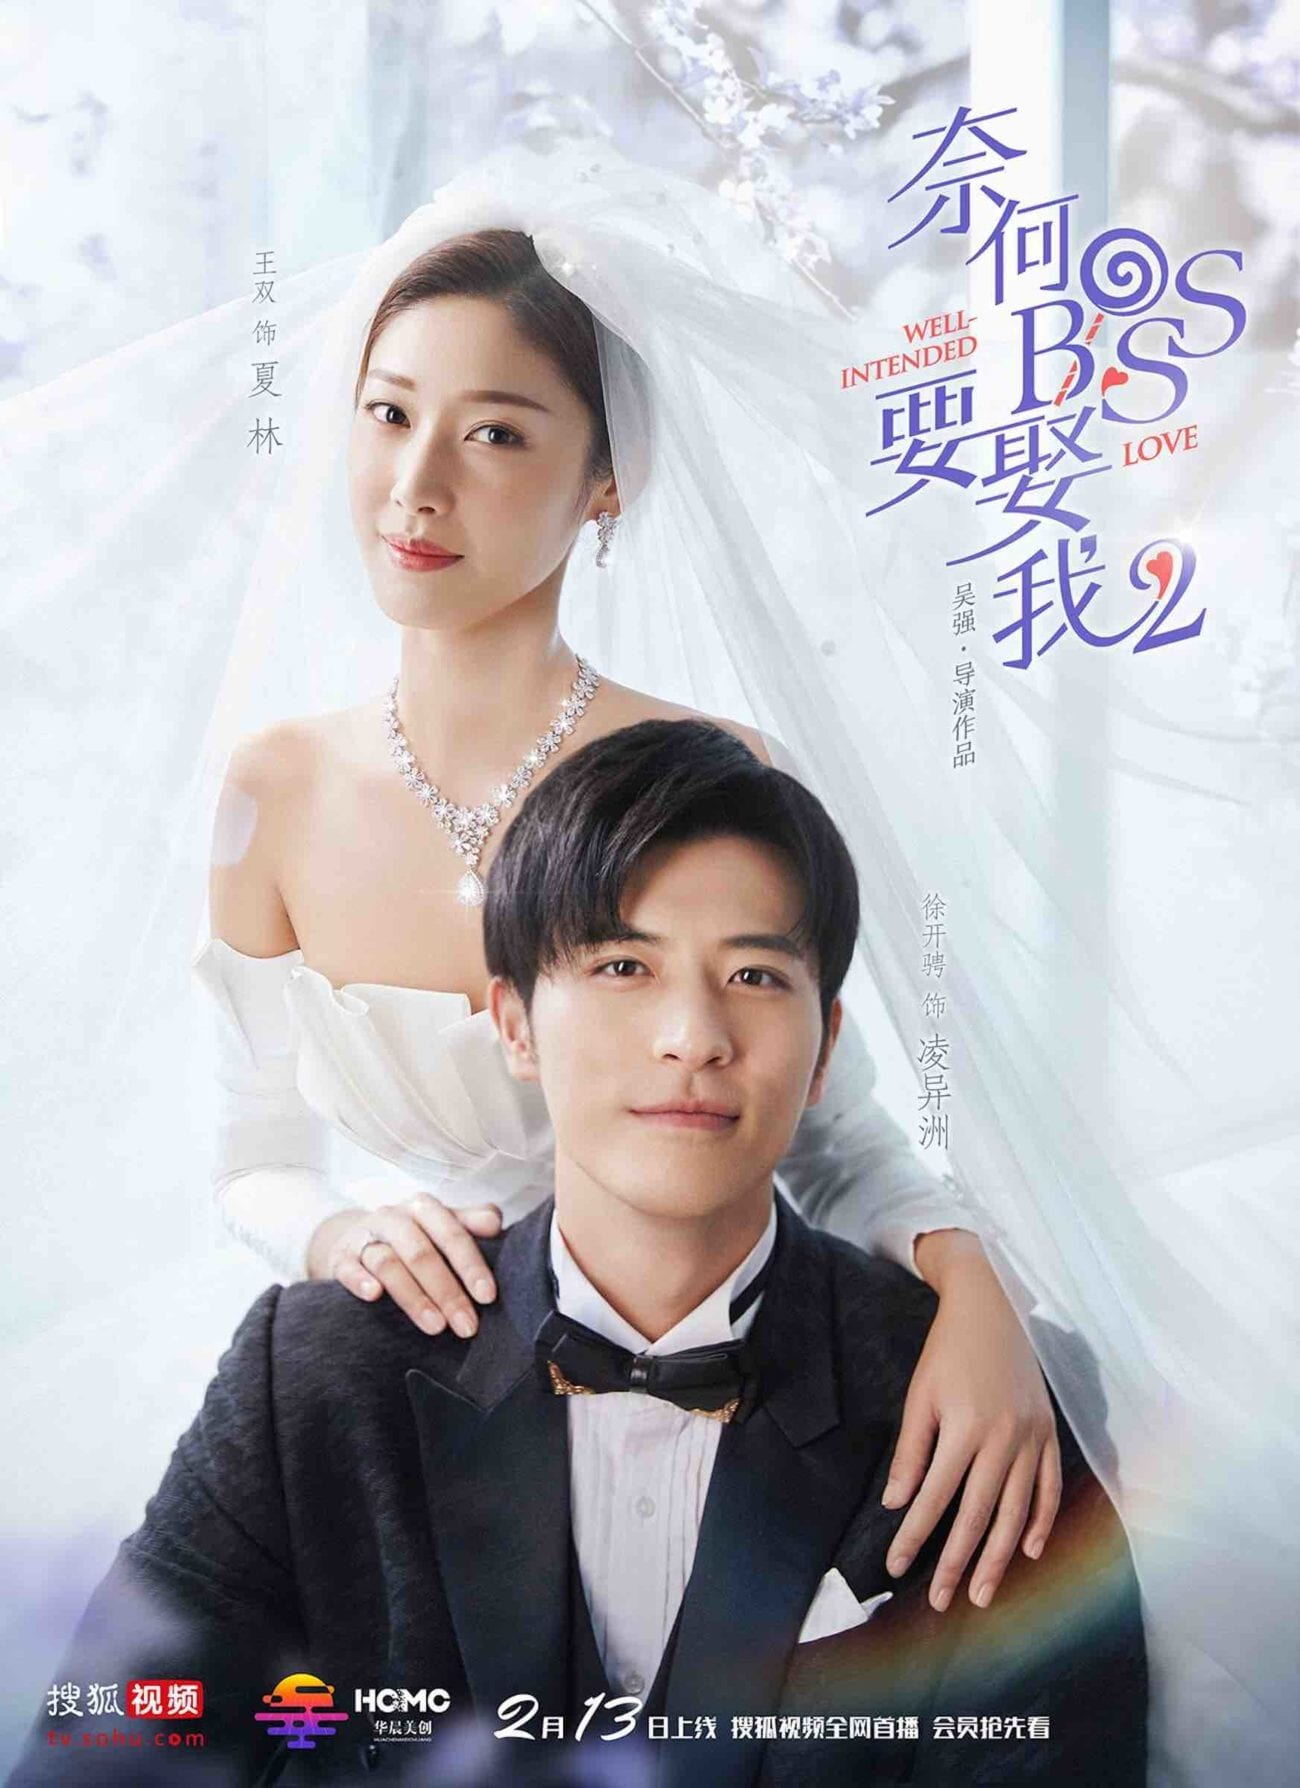 [Full OST // Mp3 Link] Well Intended Love 2 OST || 奈何BOSS